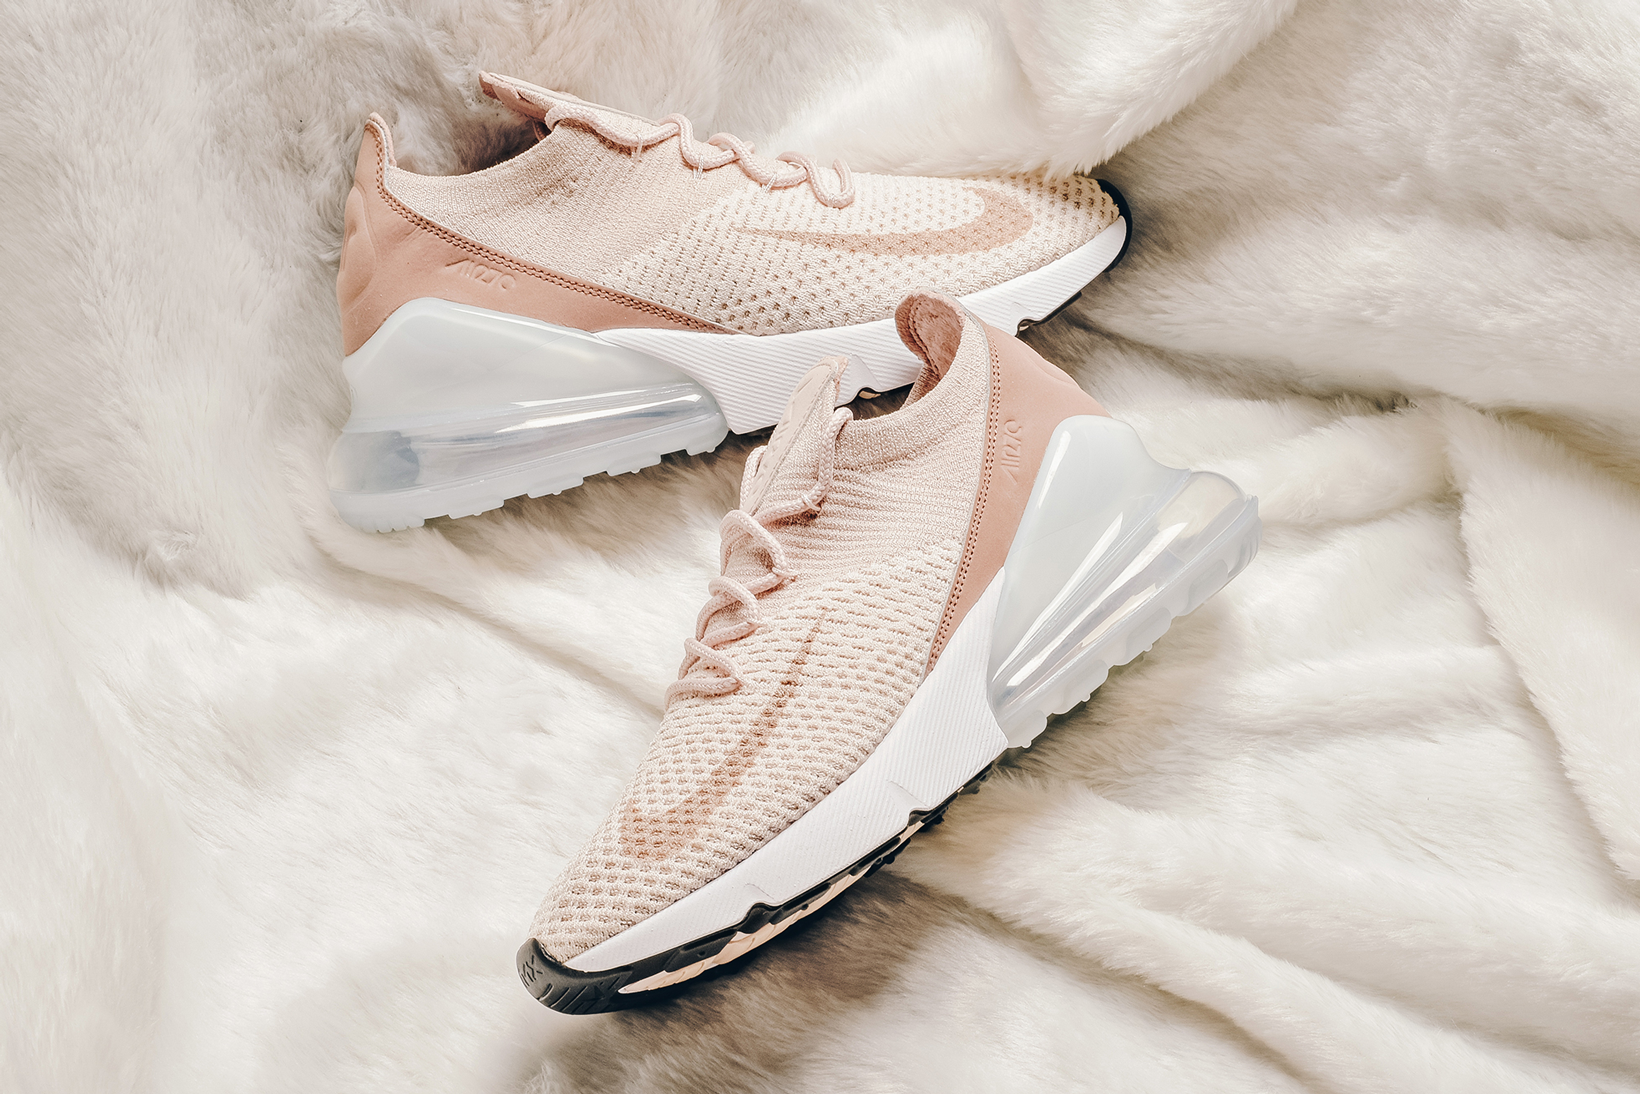 Recoger hojas Tierra mental  Nike Mixes Three Pink Hues on the Air Max 270 | Nike air max, Sneakers  fashion, Vans shoes women